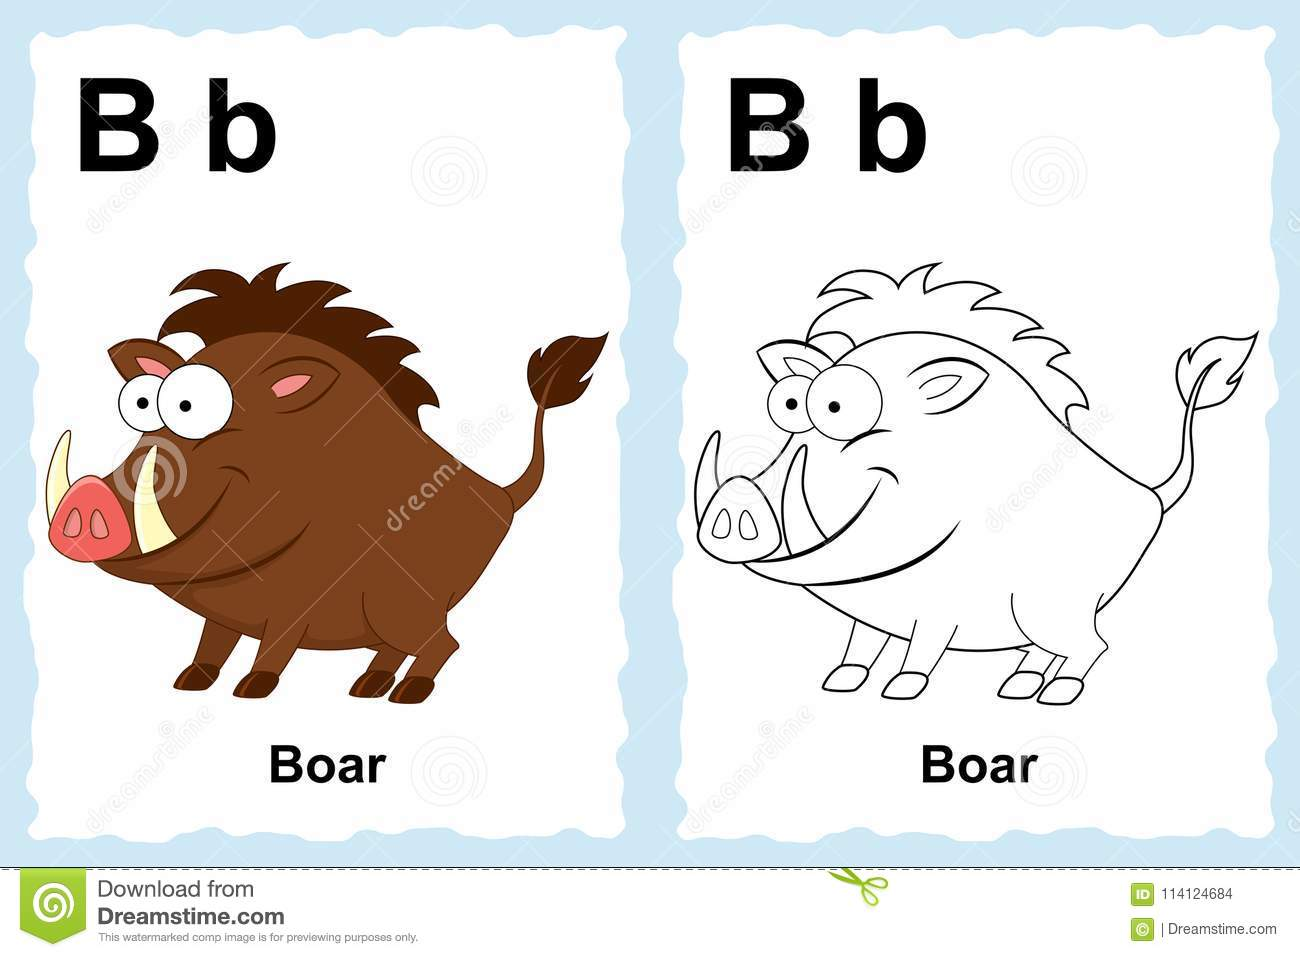 Alphabet coloring book page with outline clip art to color. Letter B. Boar. Vector animals.